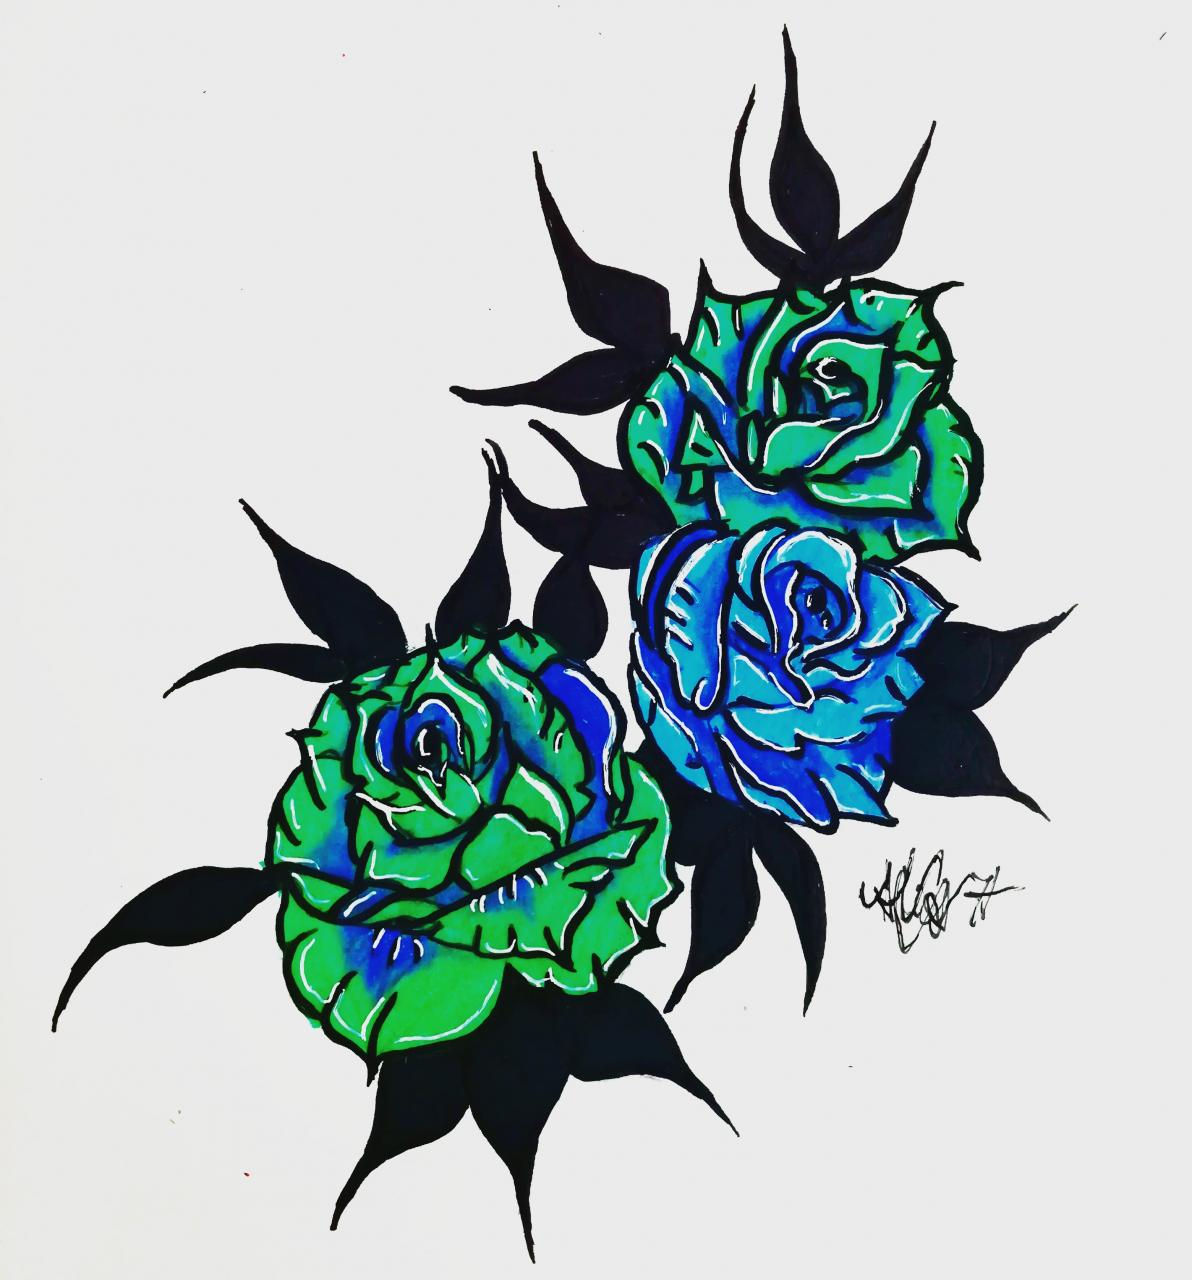 Green and blue roses.